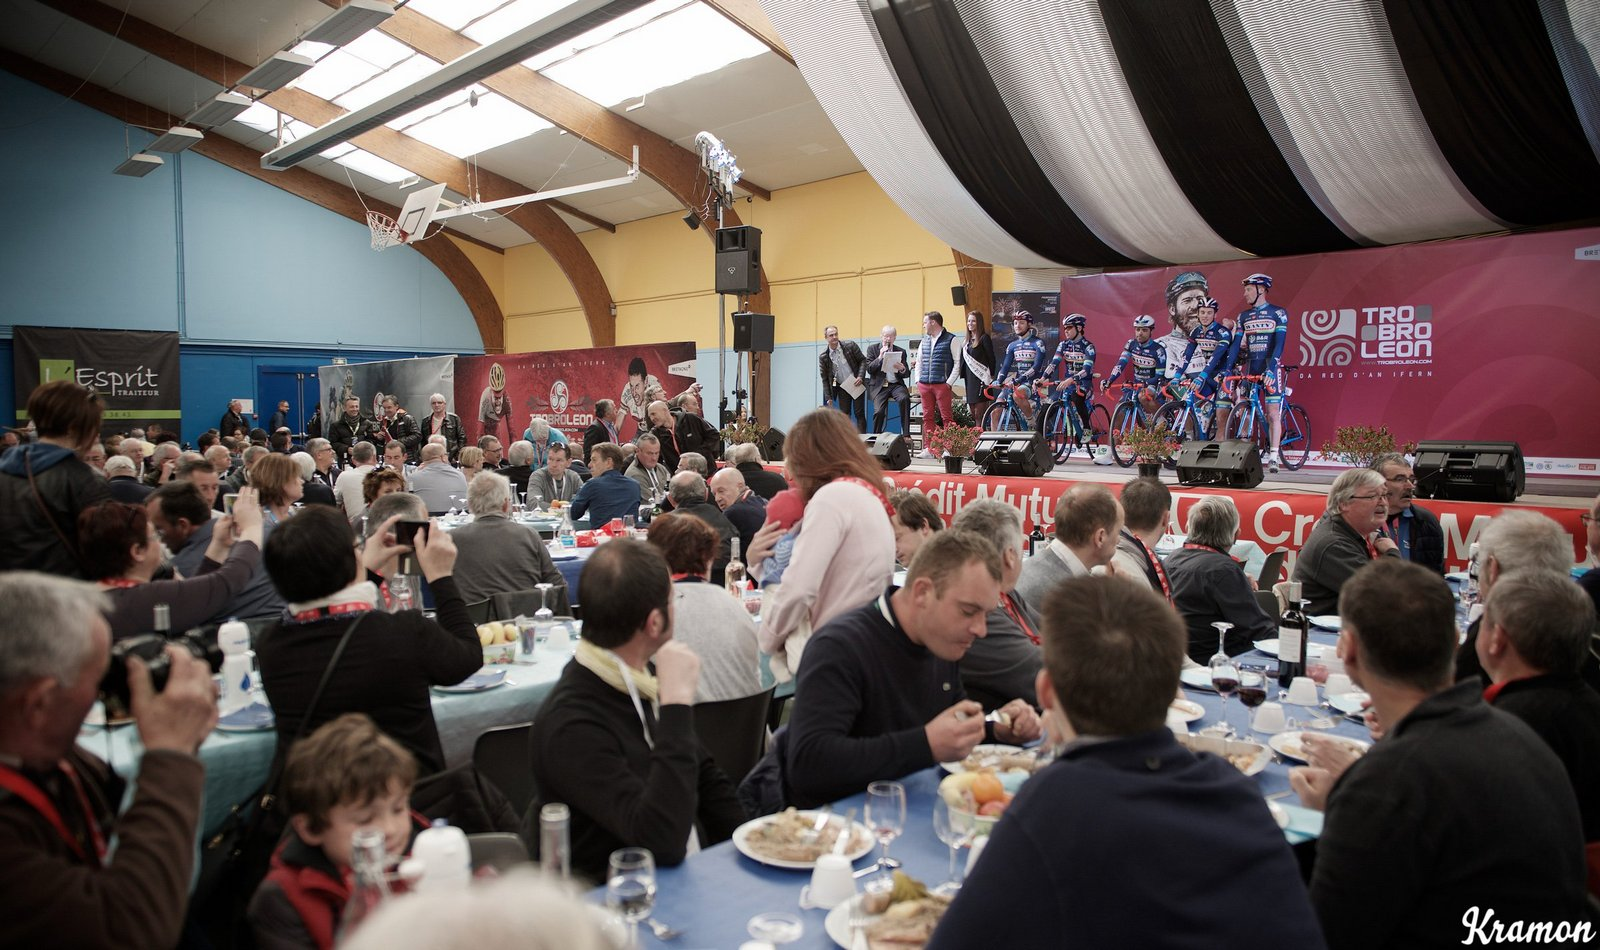 Team Wanty - Groupe Gobert presentation during a VIP guests' brunch before the start of the race 33th Tro Bro Léon 2016